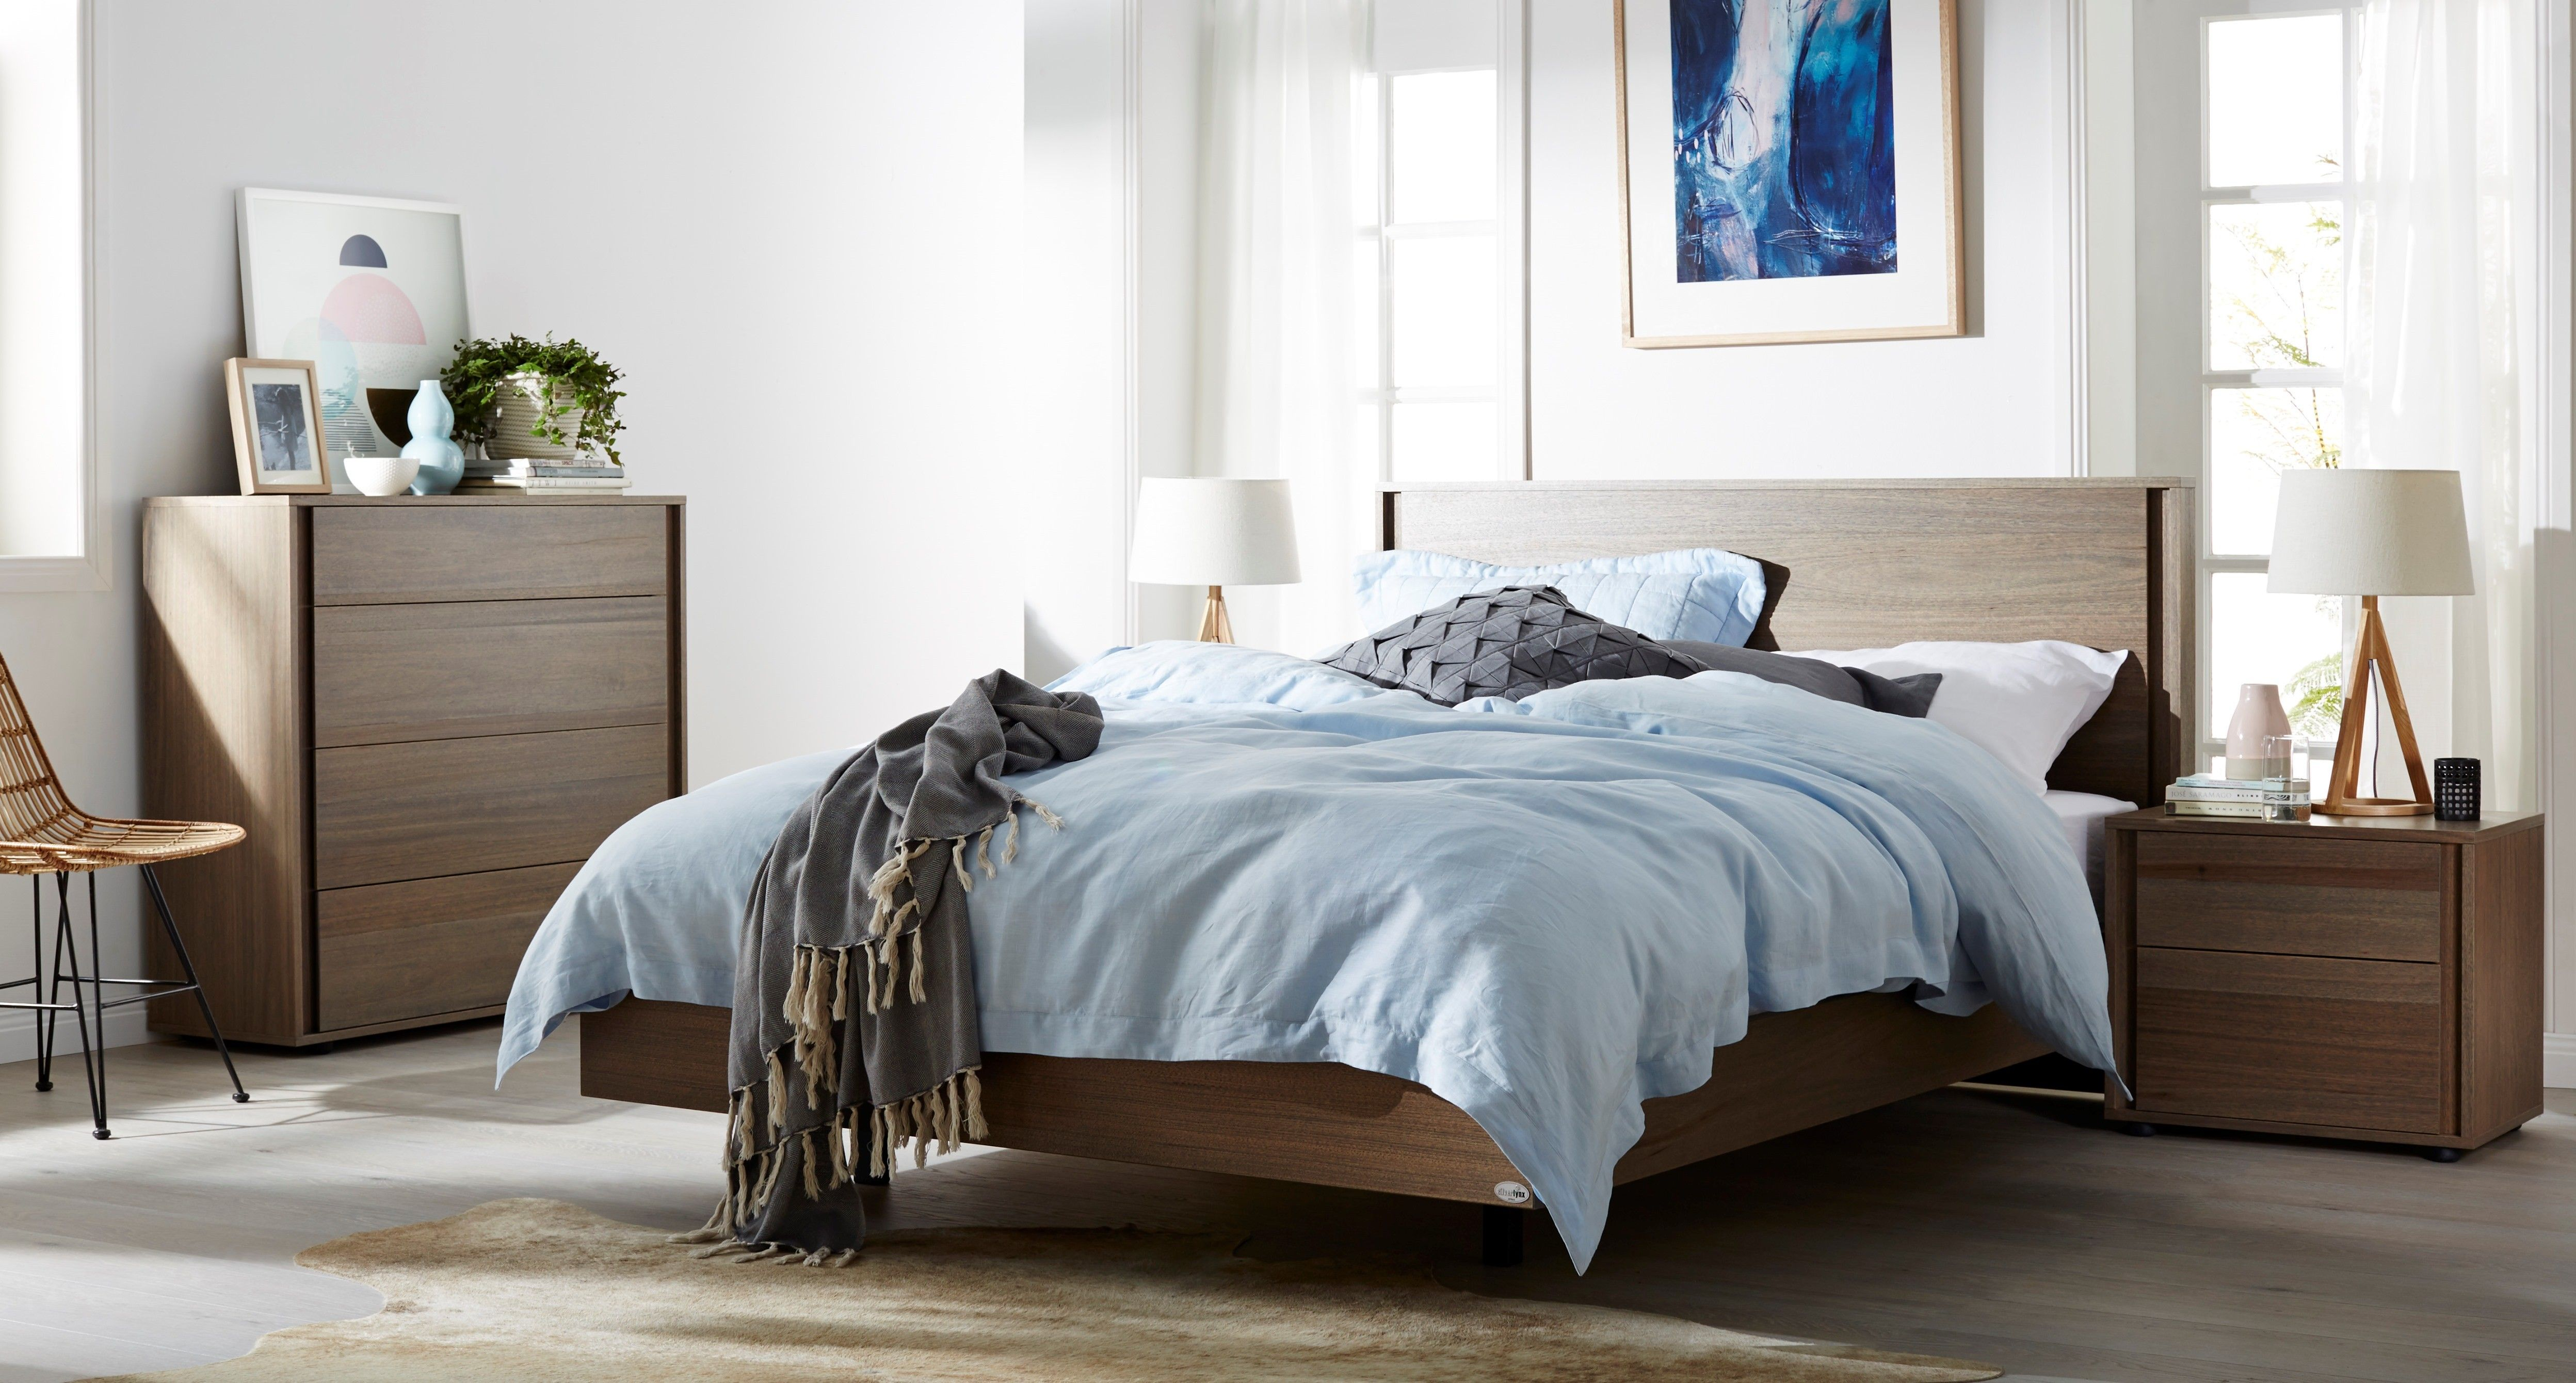 Gap Bedroom Furniture here to PDF It may be